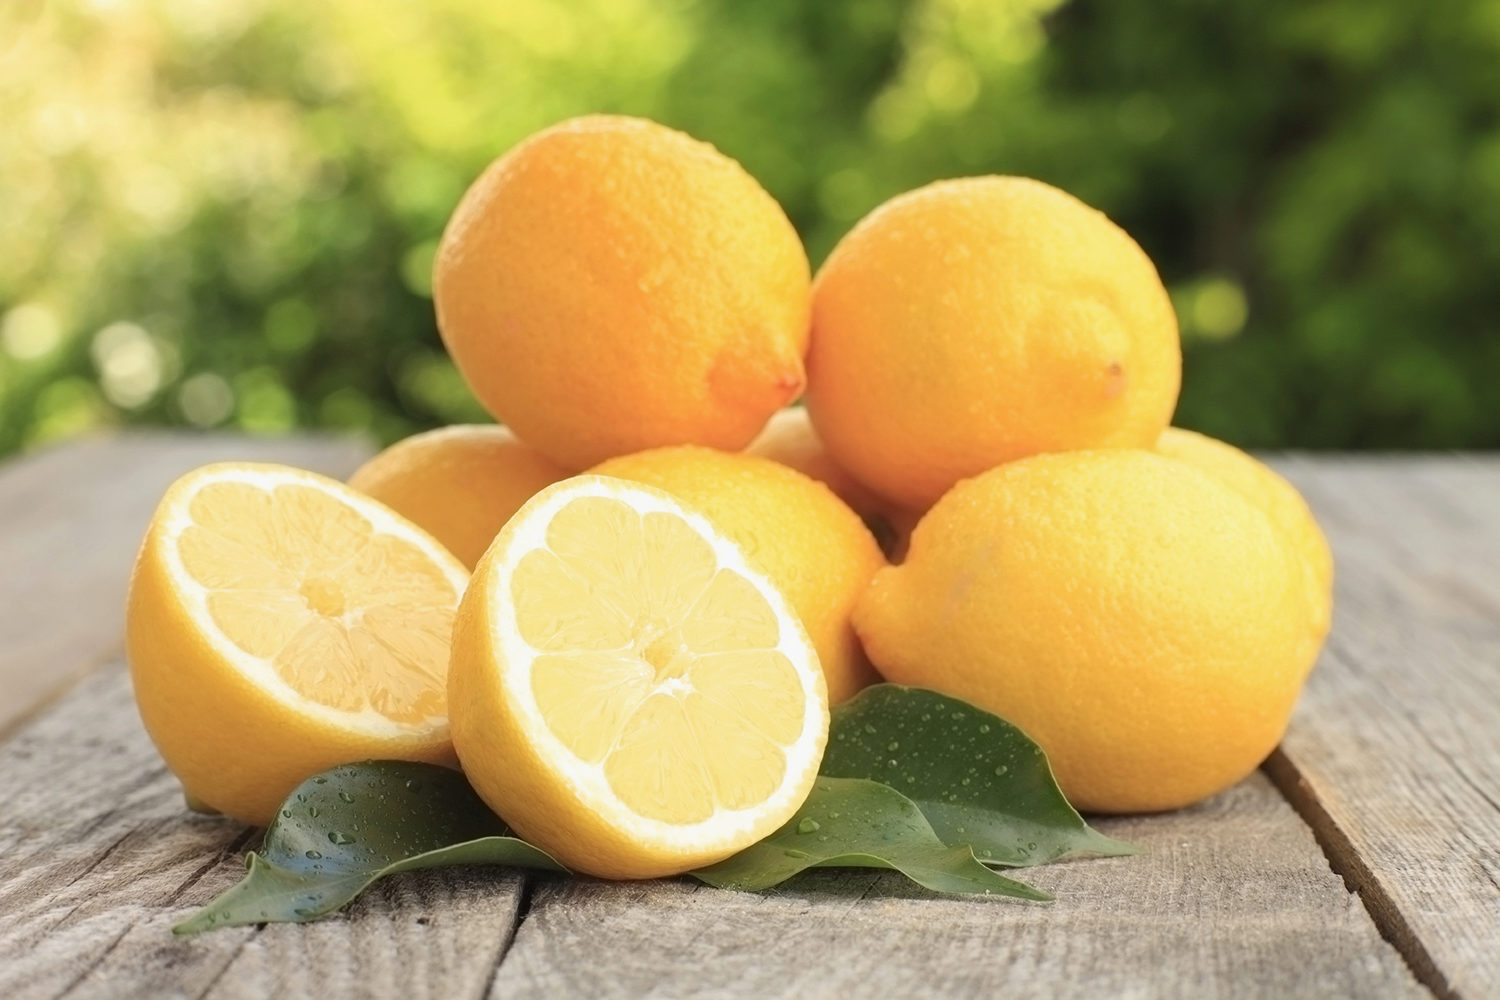 Benefits of Lemon you did't know